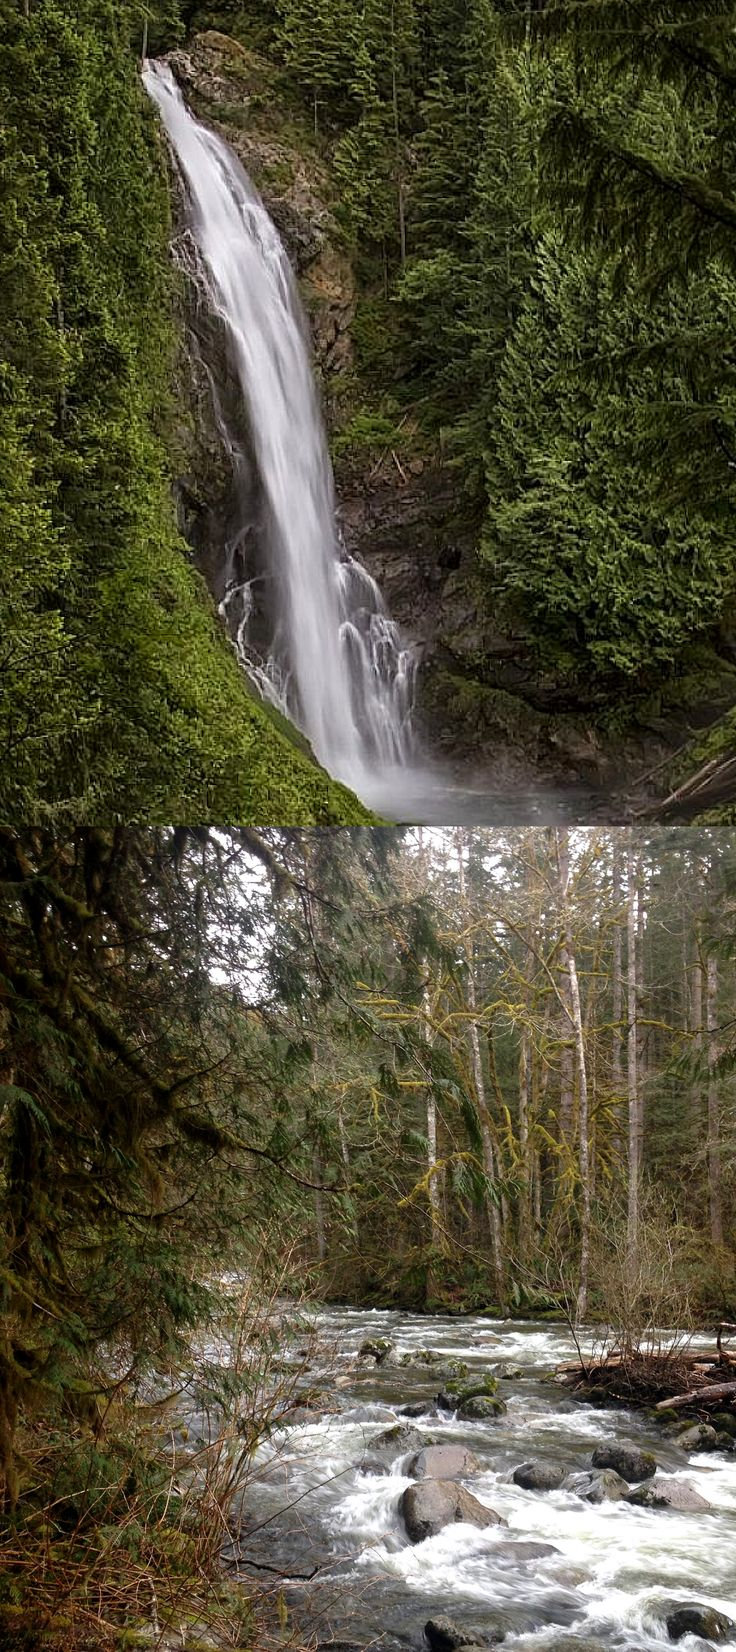 Day trip to Wallace Falls State Park - hike to the Upper Falls and explore the Pacific Northwest.